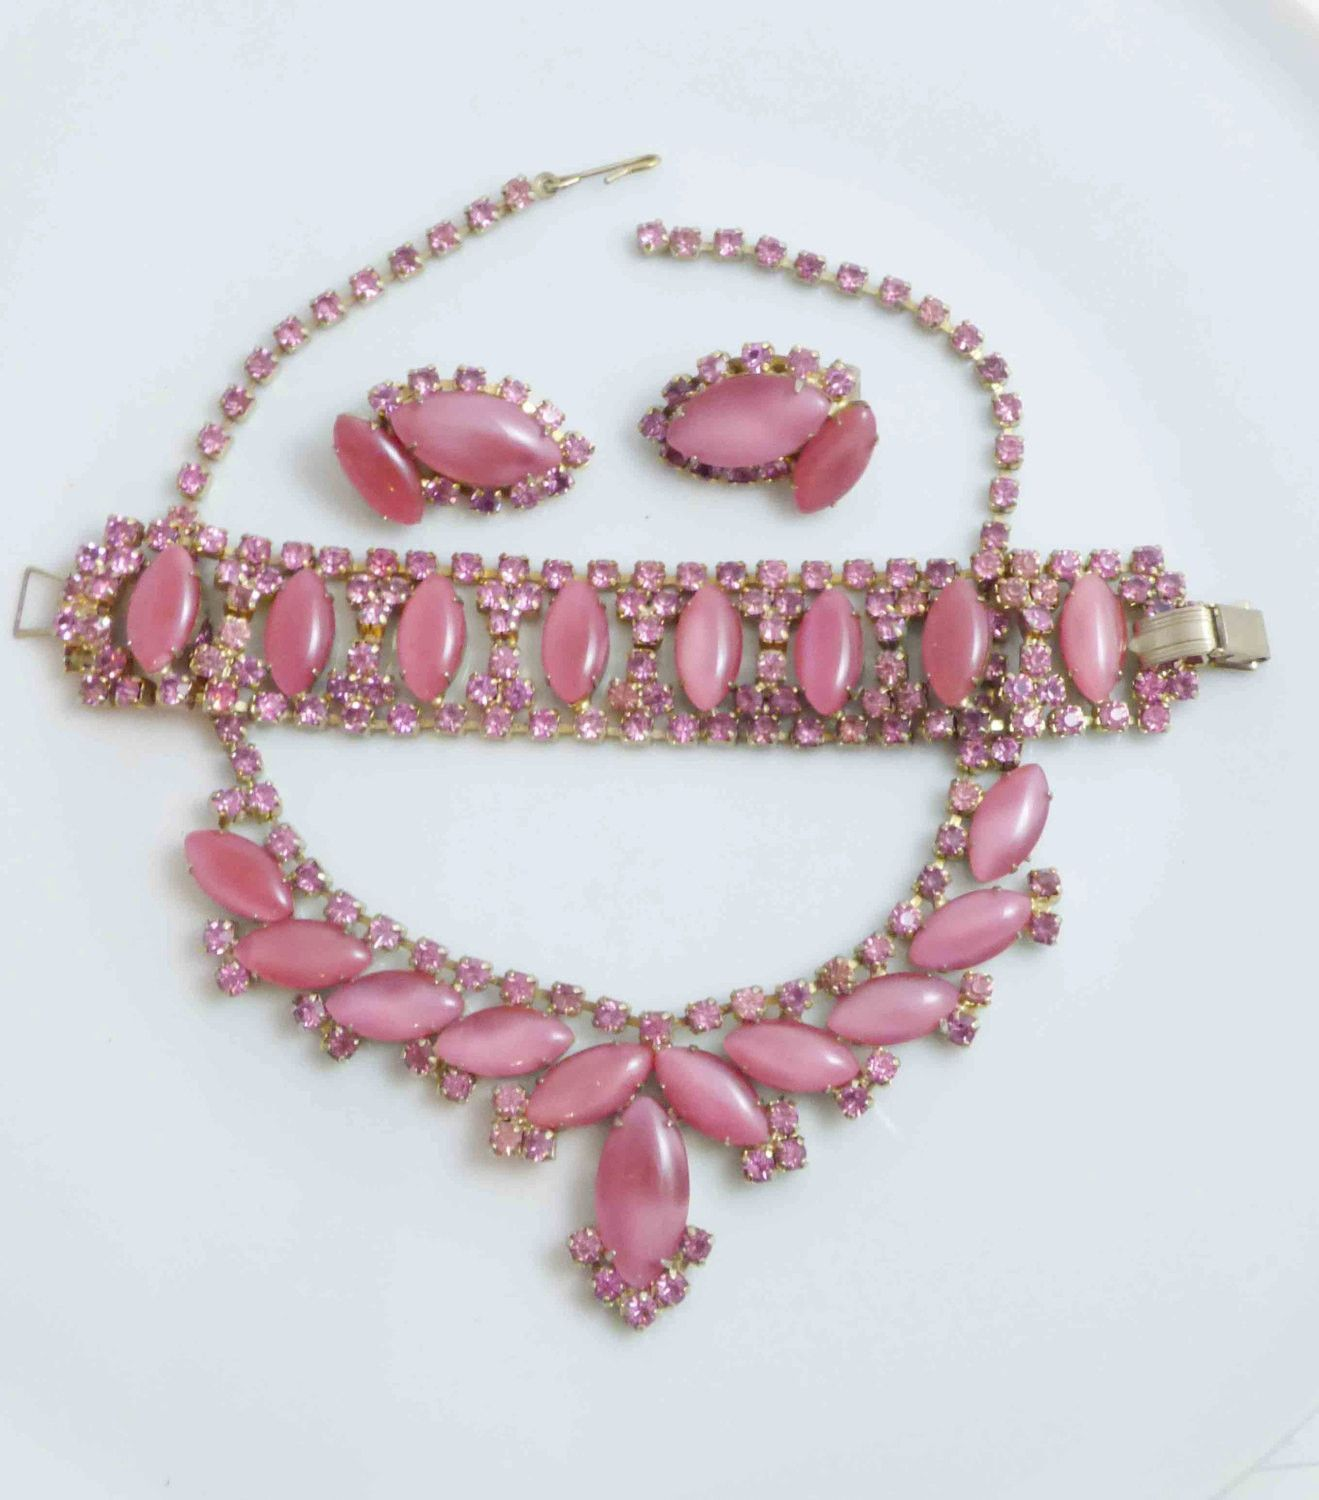 Pink Moonstone and Rhinestone Parure. Necklace, Bracelet and Clip Earrings